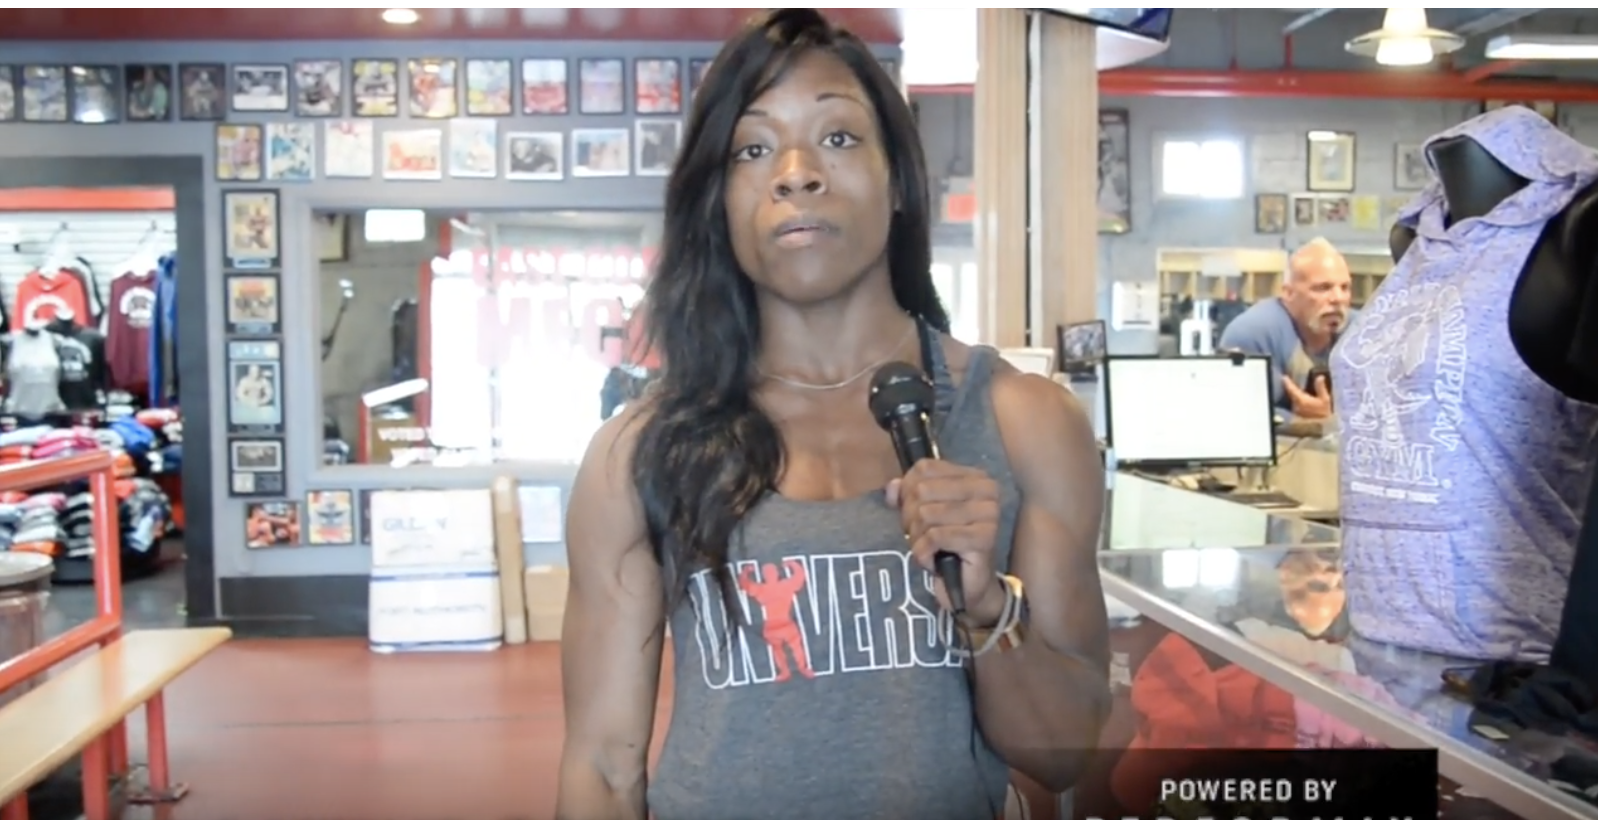 IFBB Figure Pro/Universal Nutrition Athlete. Kendyl Seawright 2 Days Out From the 2018 IFBB NY Pro